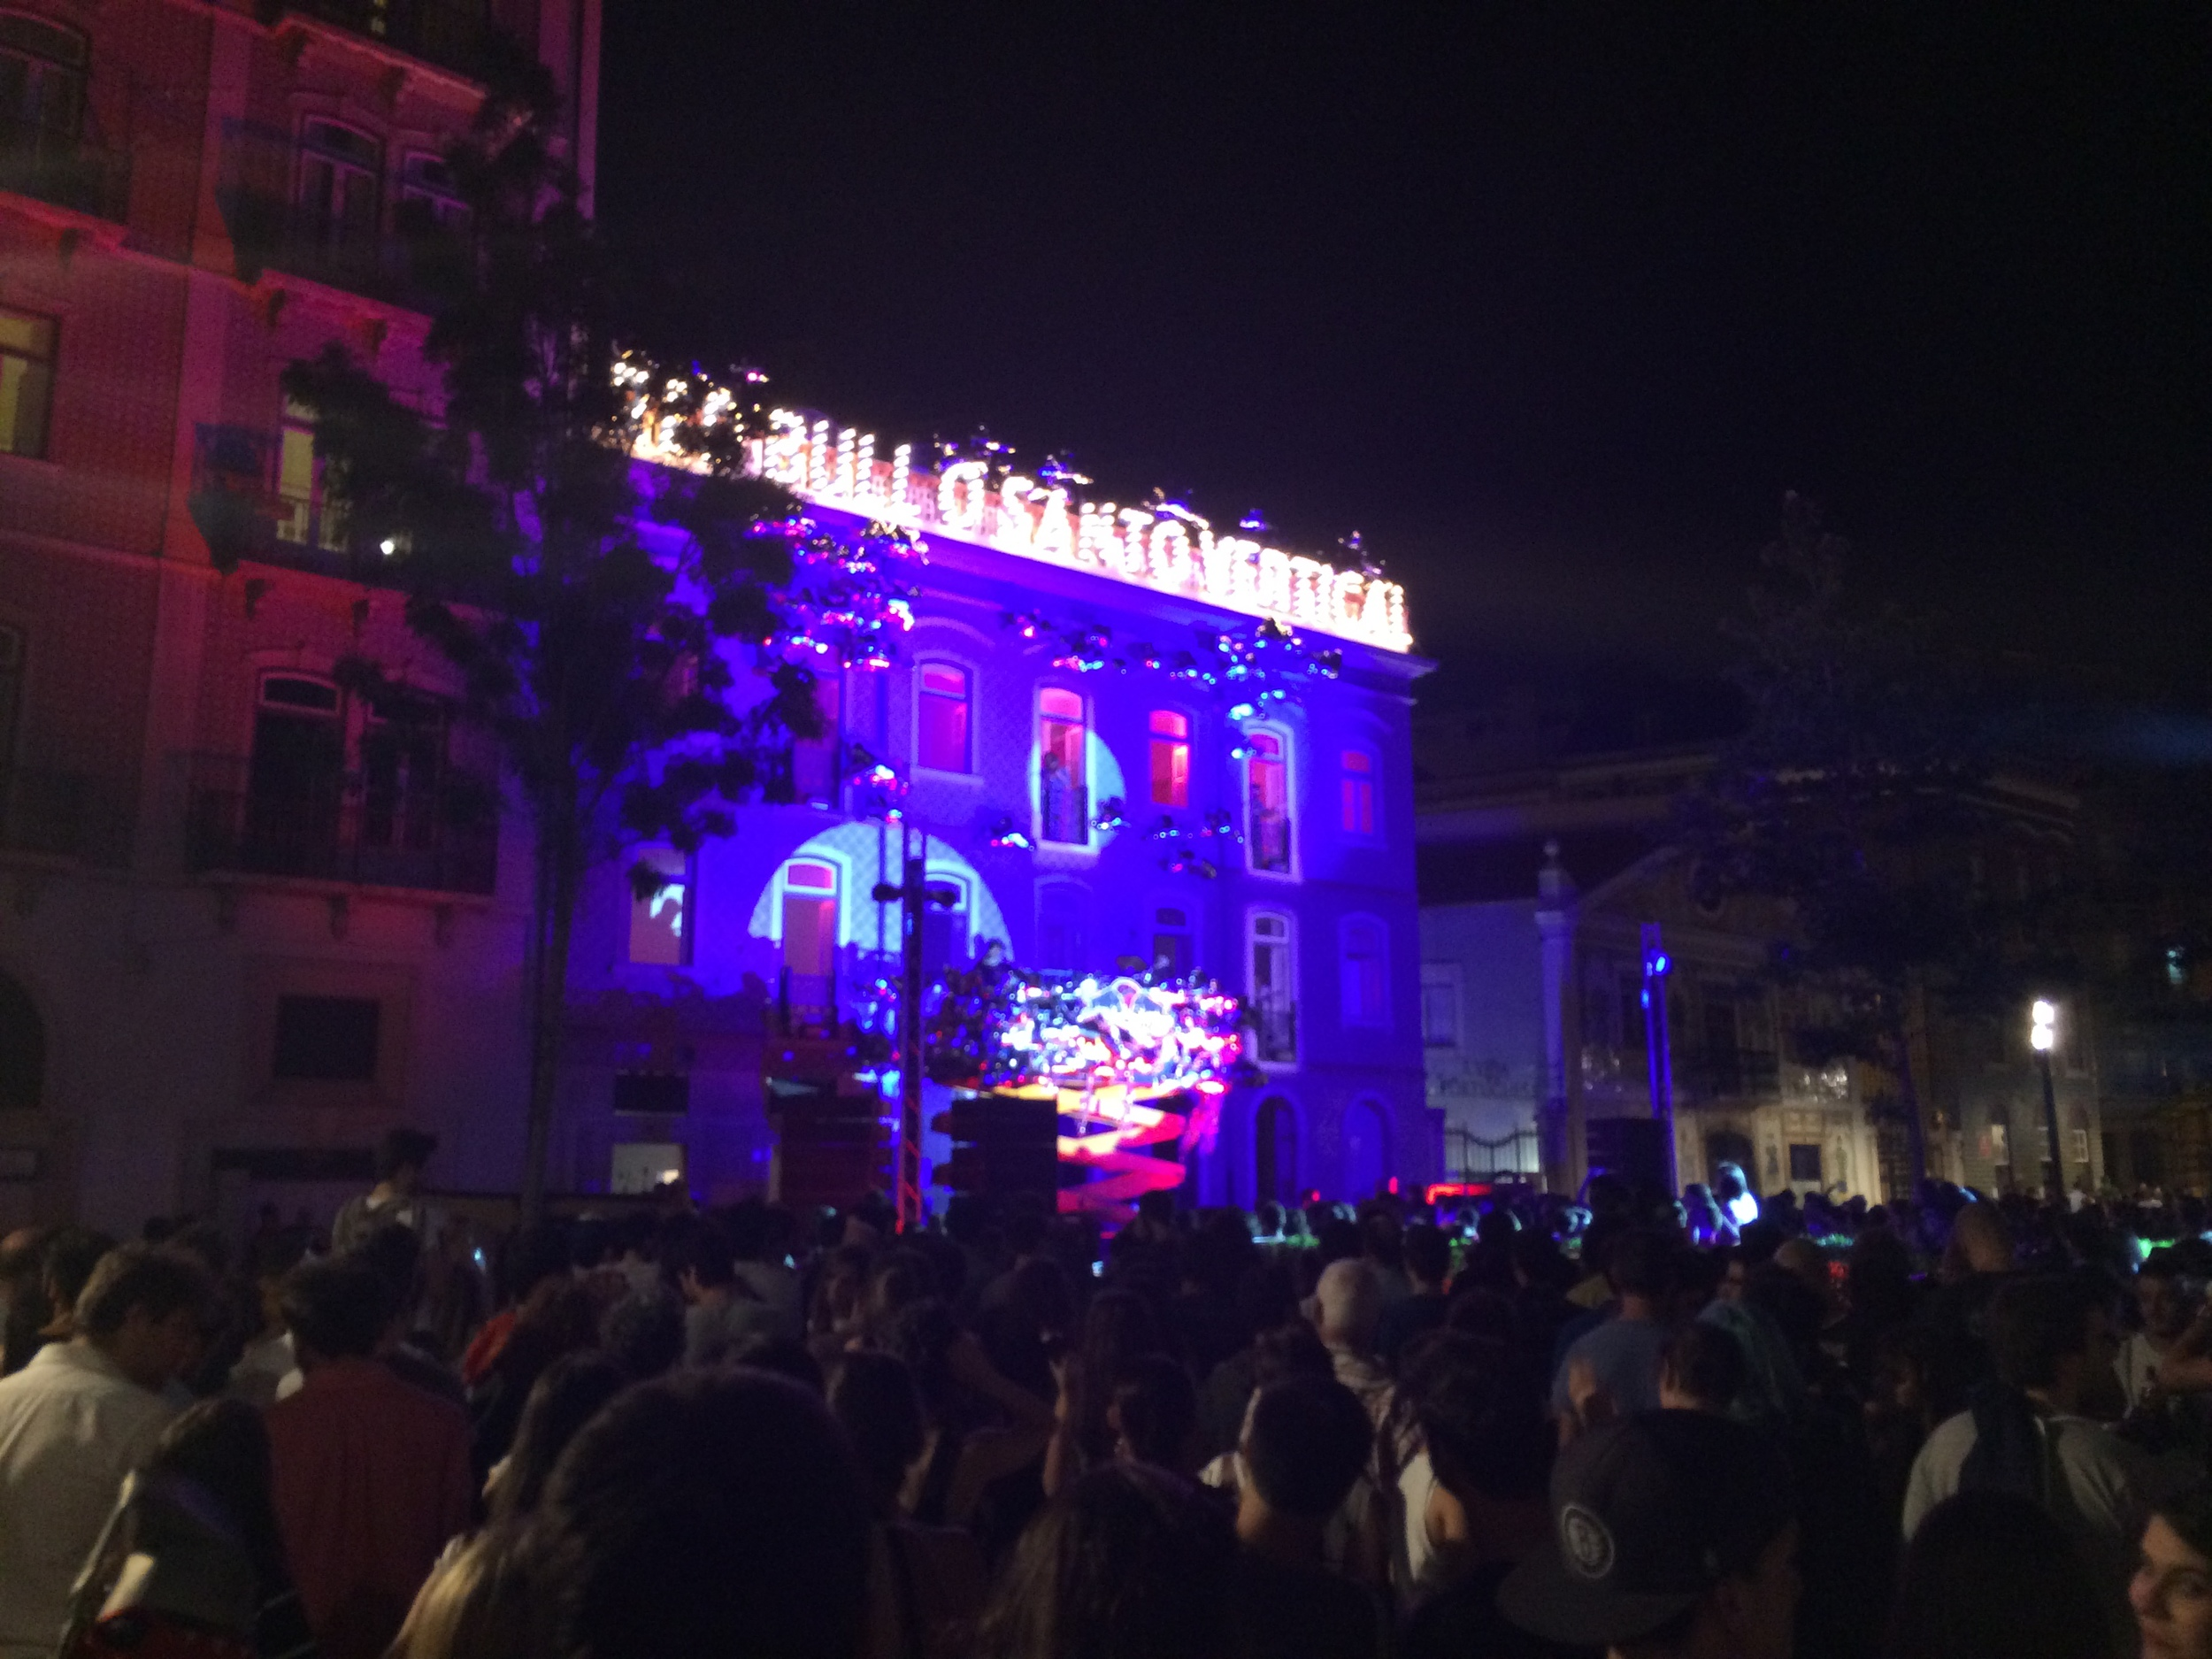 This was the concert right outside my hostel. Super convenient.